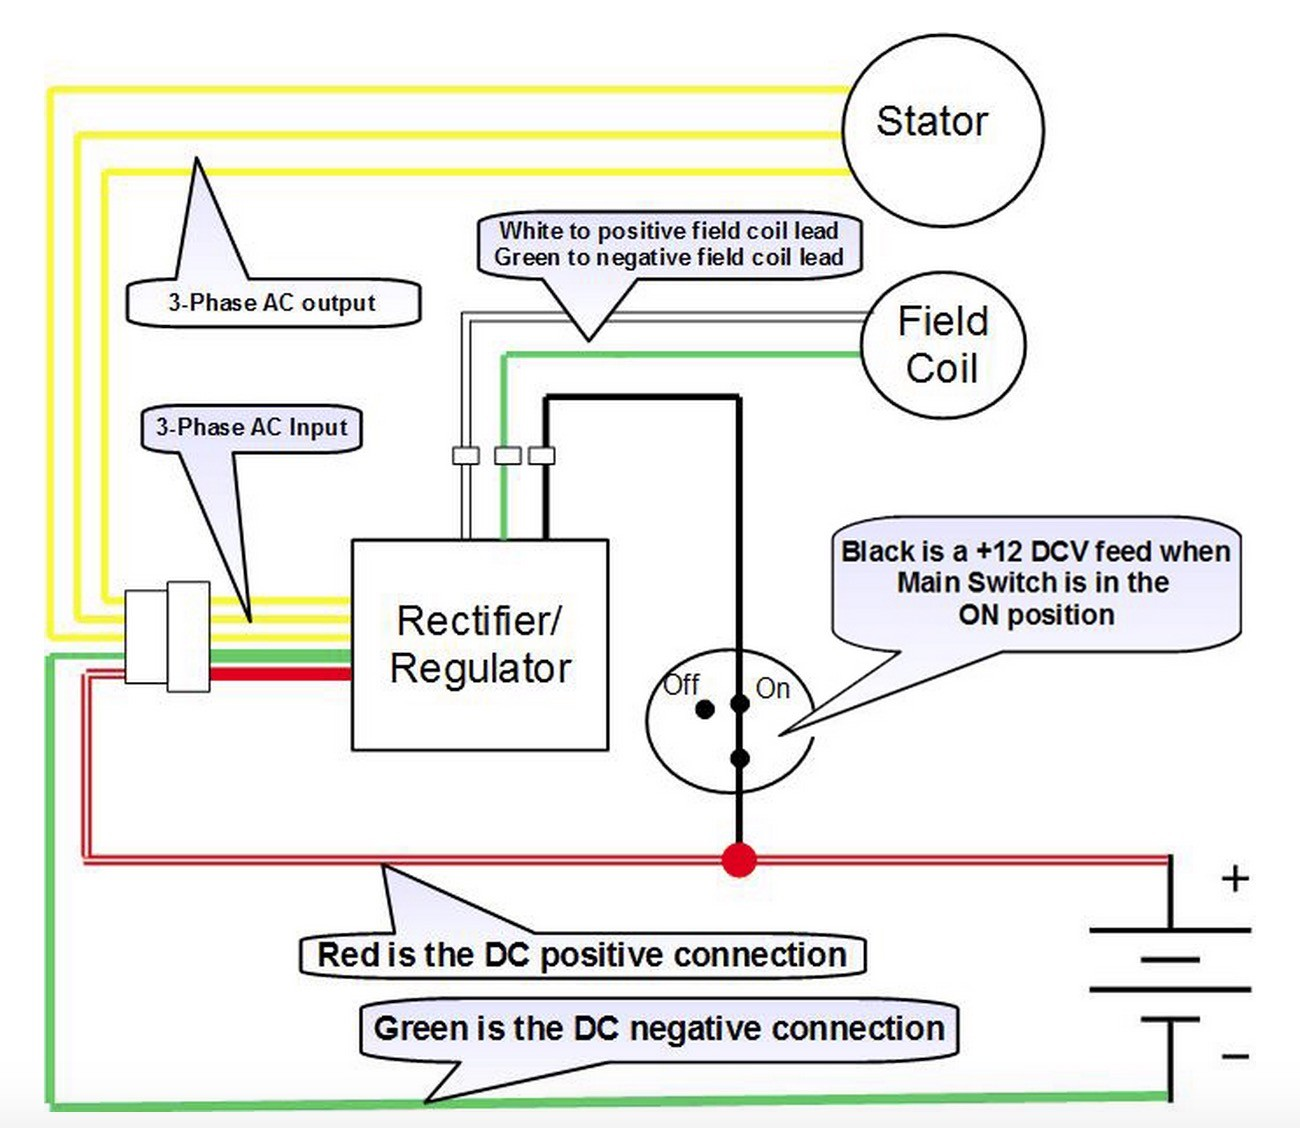 Wiring Diagram Likewise Voltage Regulator Rectifier On Cb750 Wiring on cb1100f wiring schematic, gl1100 wiring schematic, cb500t wiring schematic, xr650r wiring schematic, motorcycle wiring schematic, gl1000 wiring schematic, xs650 wiring schematic, honda wiring schematic, gl1800 wiring schematic,